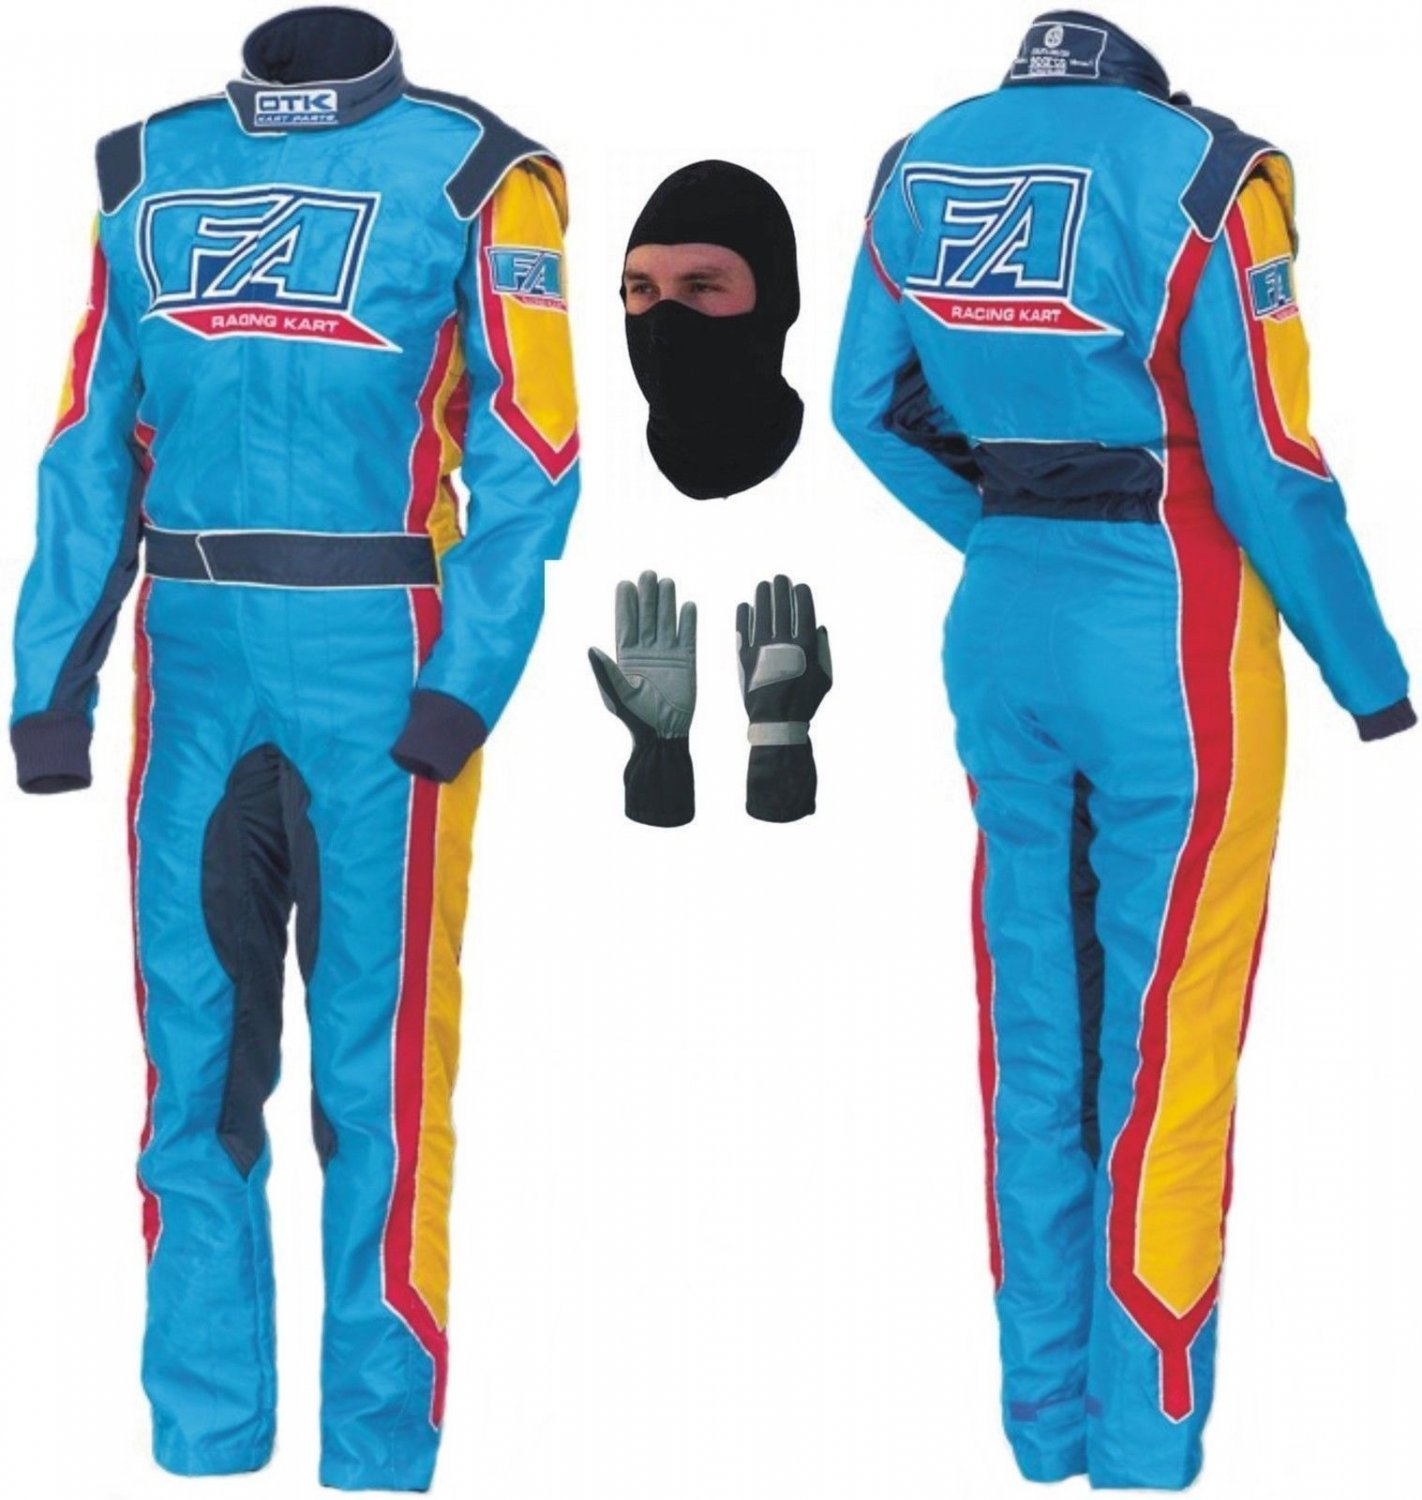 FA Kart Race Suit CIK/FIA Level 2 2013 Style With Free Gifts